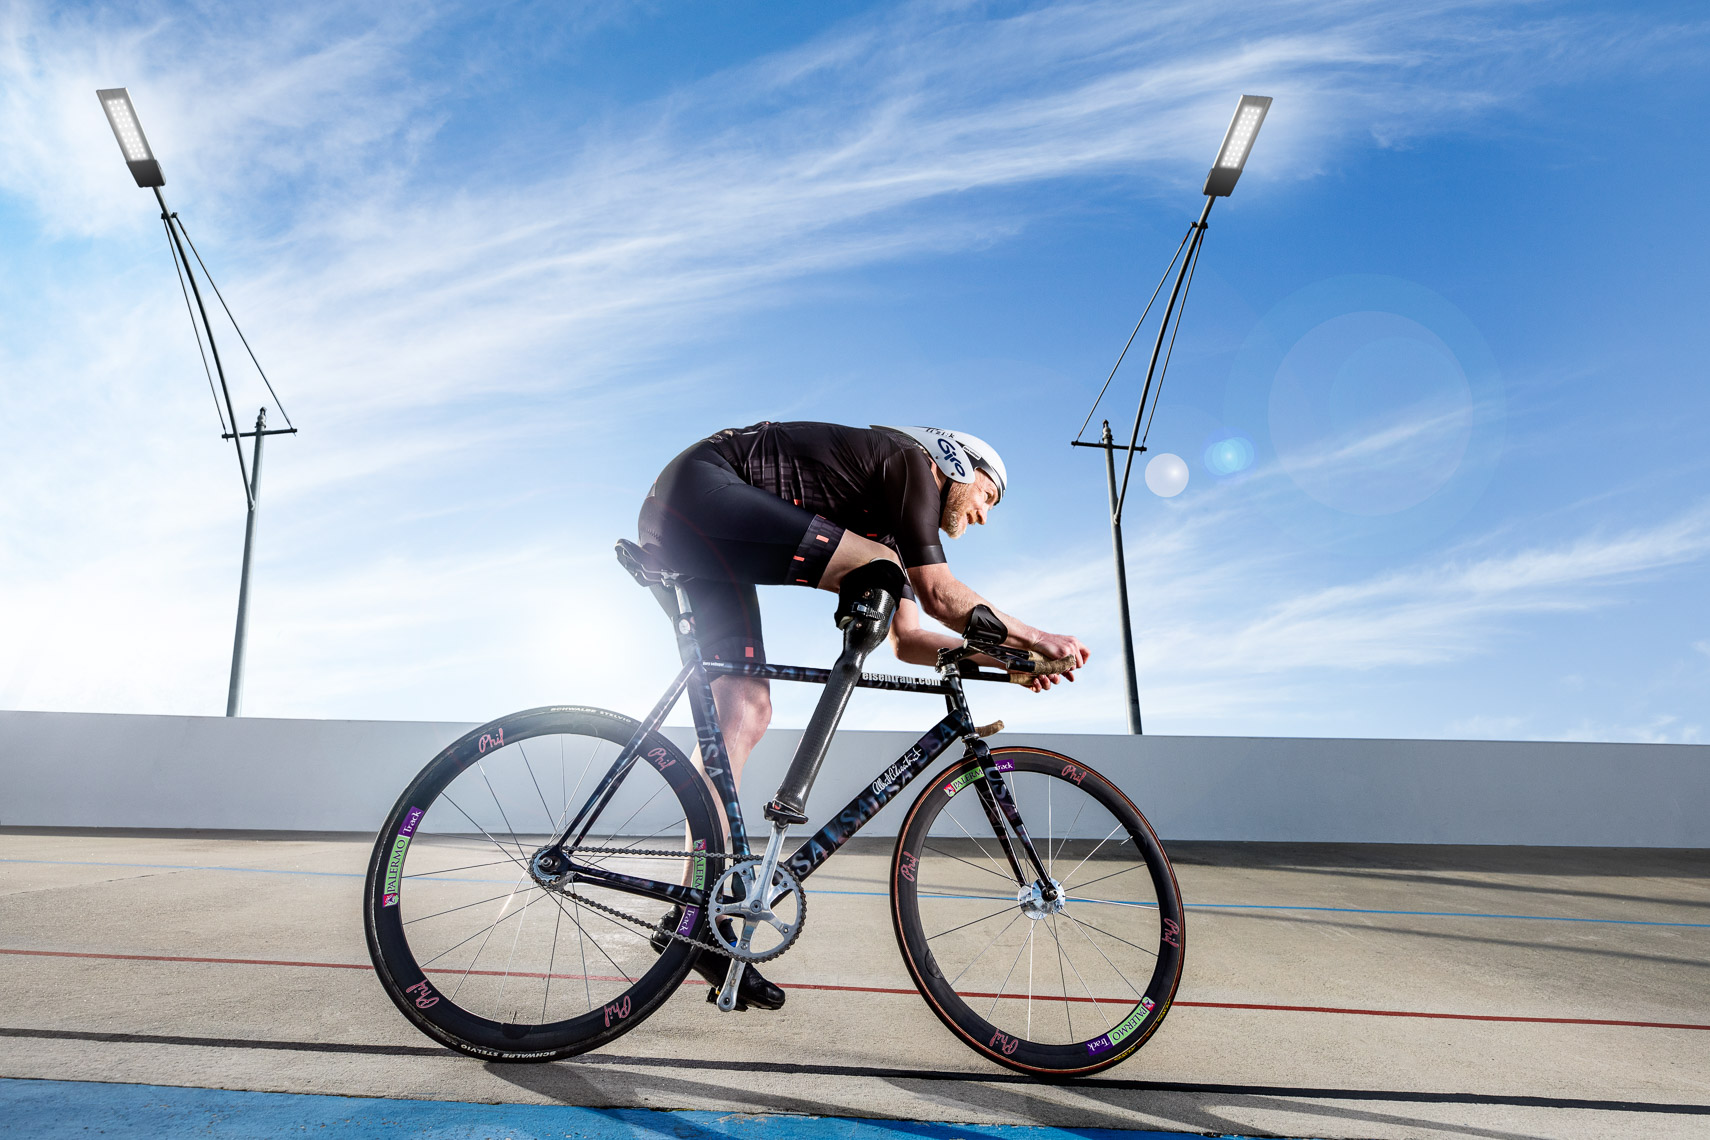 On location shoot of amputee athlete by San Francisco advertising, editorial, annual report photographer Robert Houser.